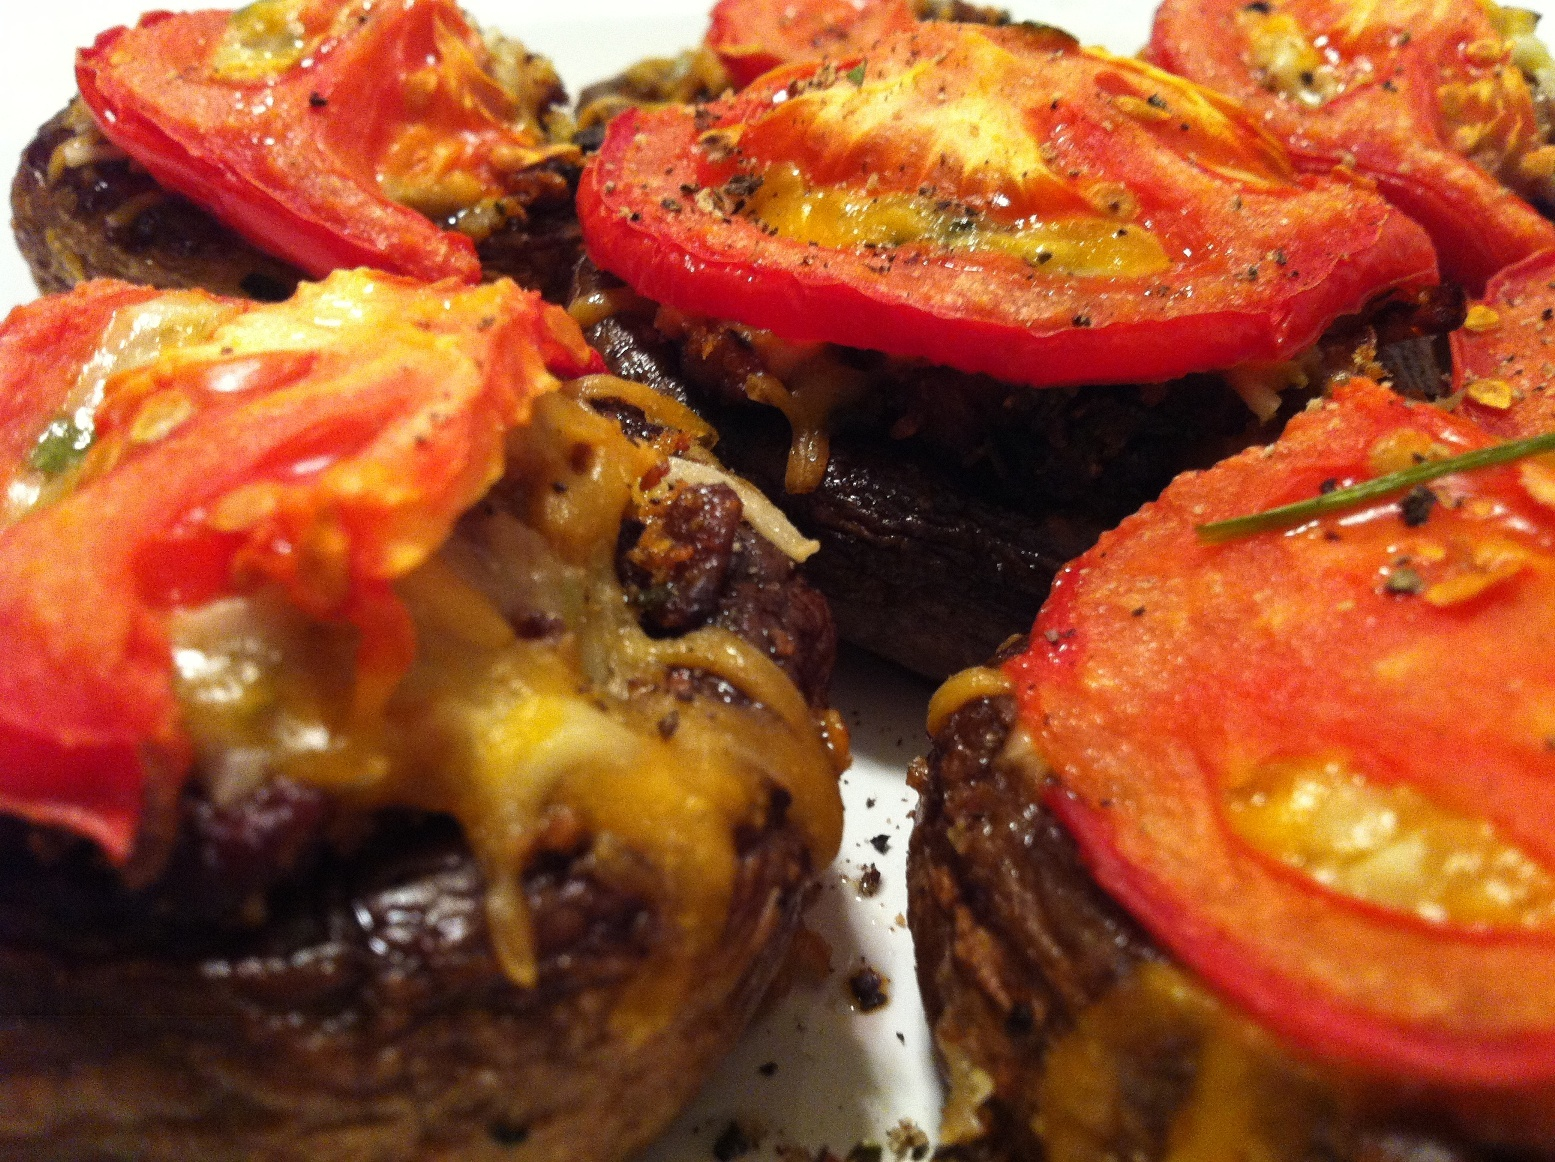 Rosemary Pepper Stuffed Mushrooms